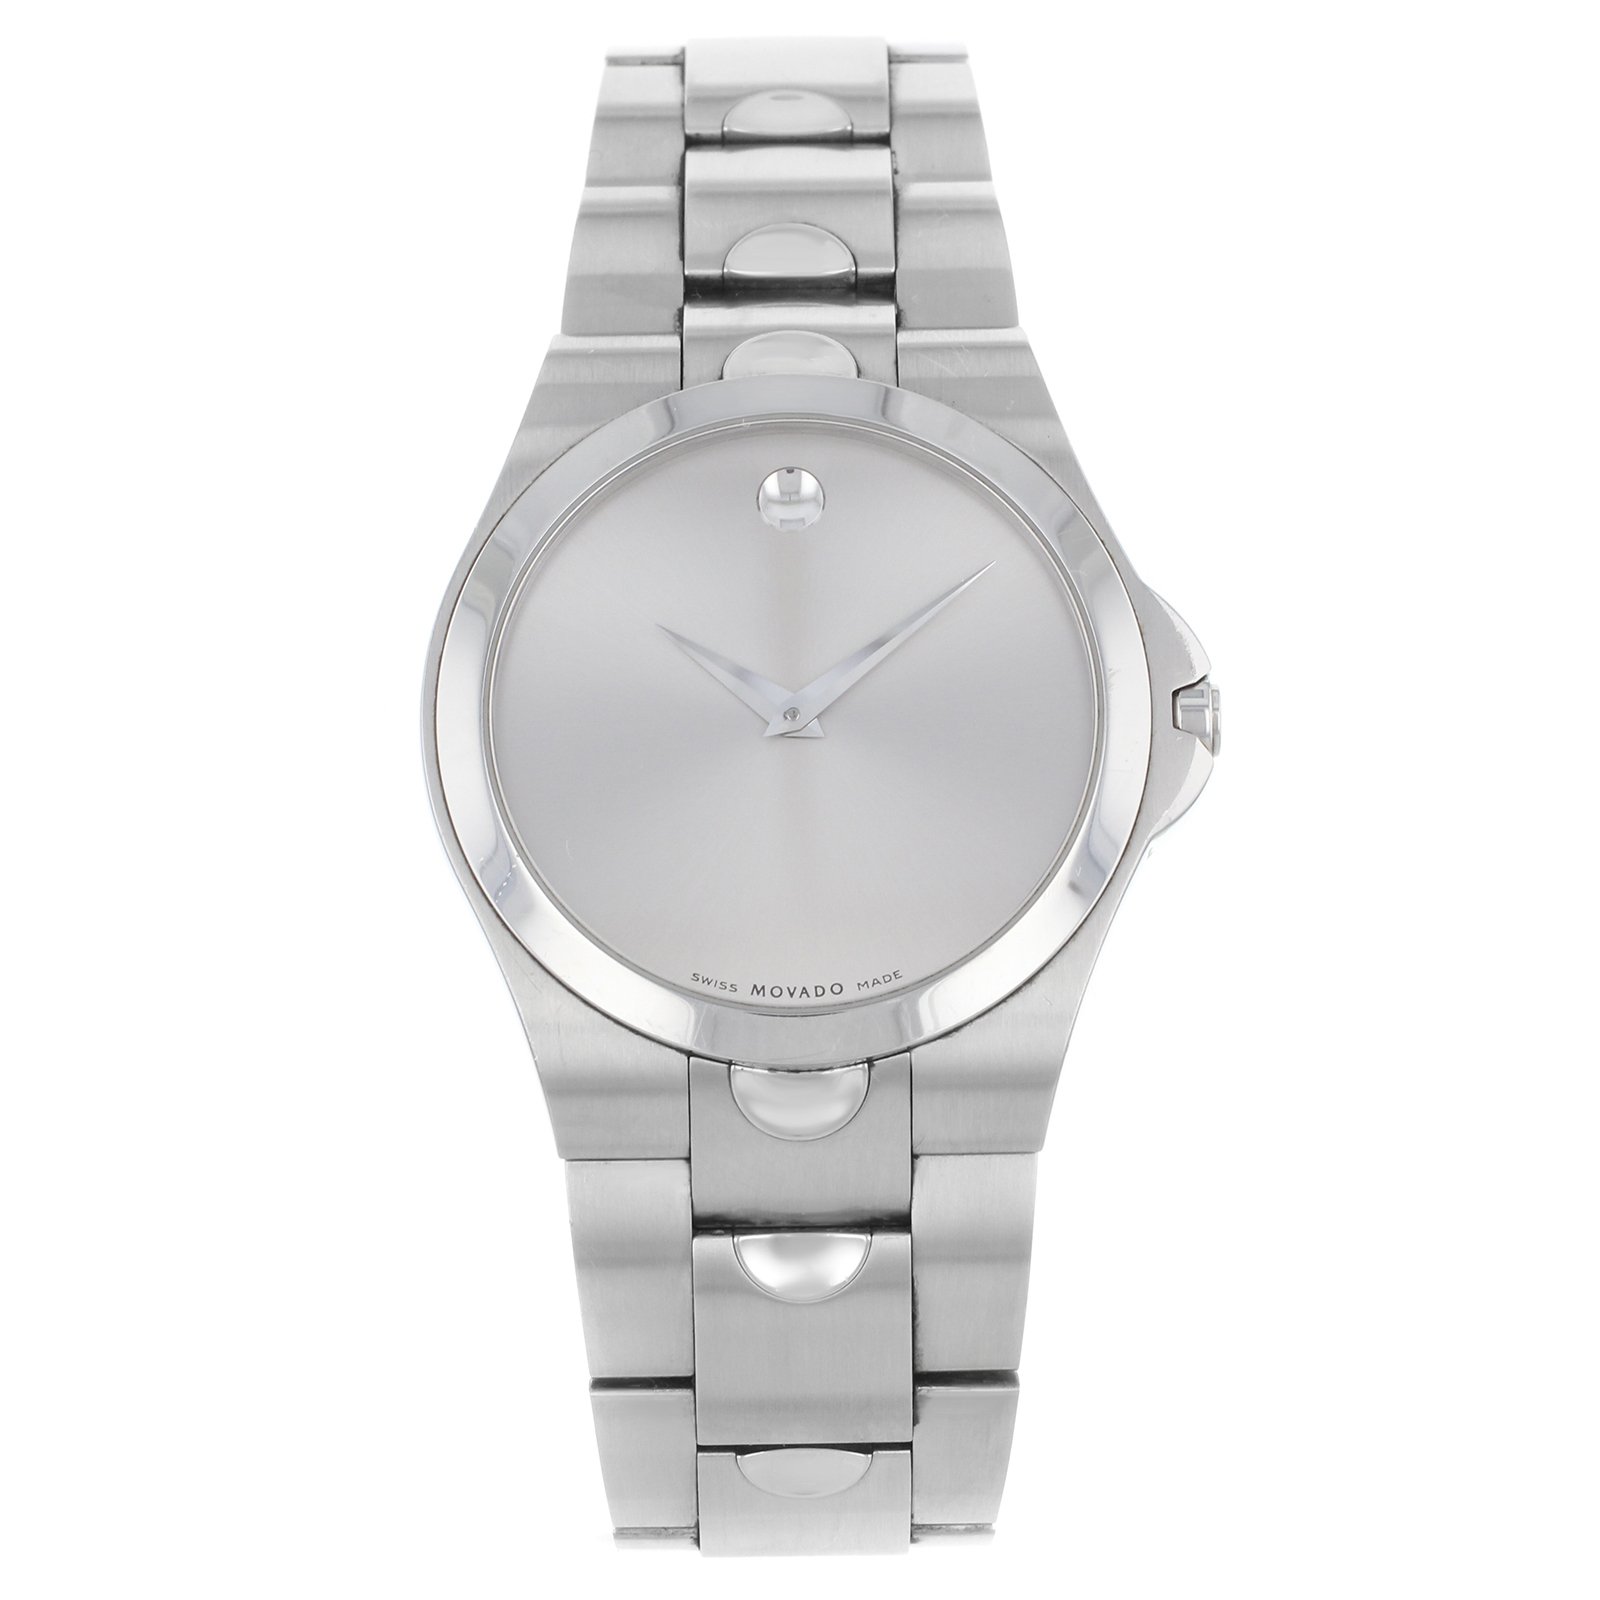 review watches reviews watch movado shot luno wyca wrist